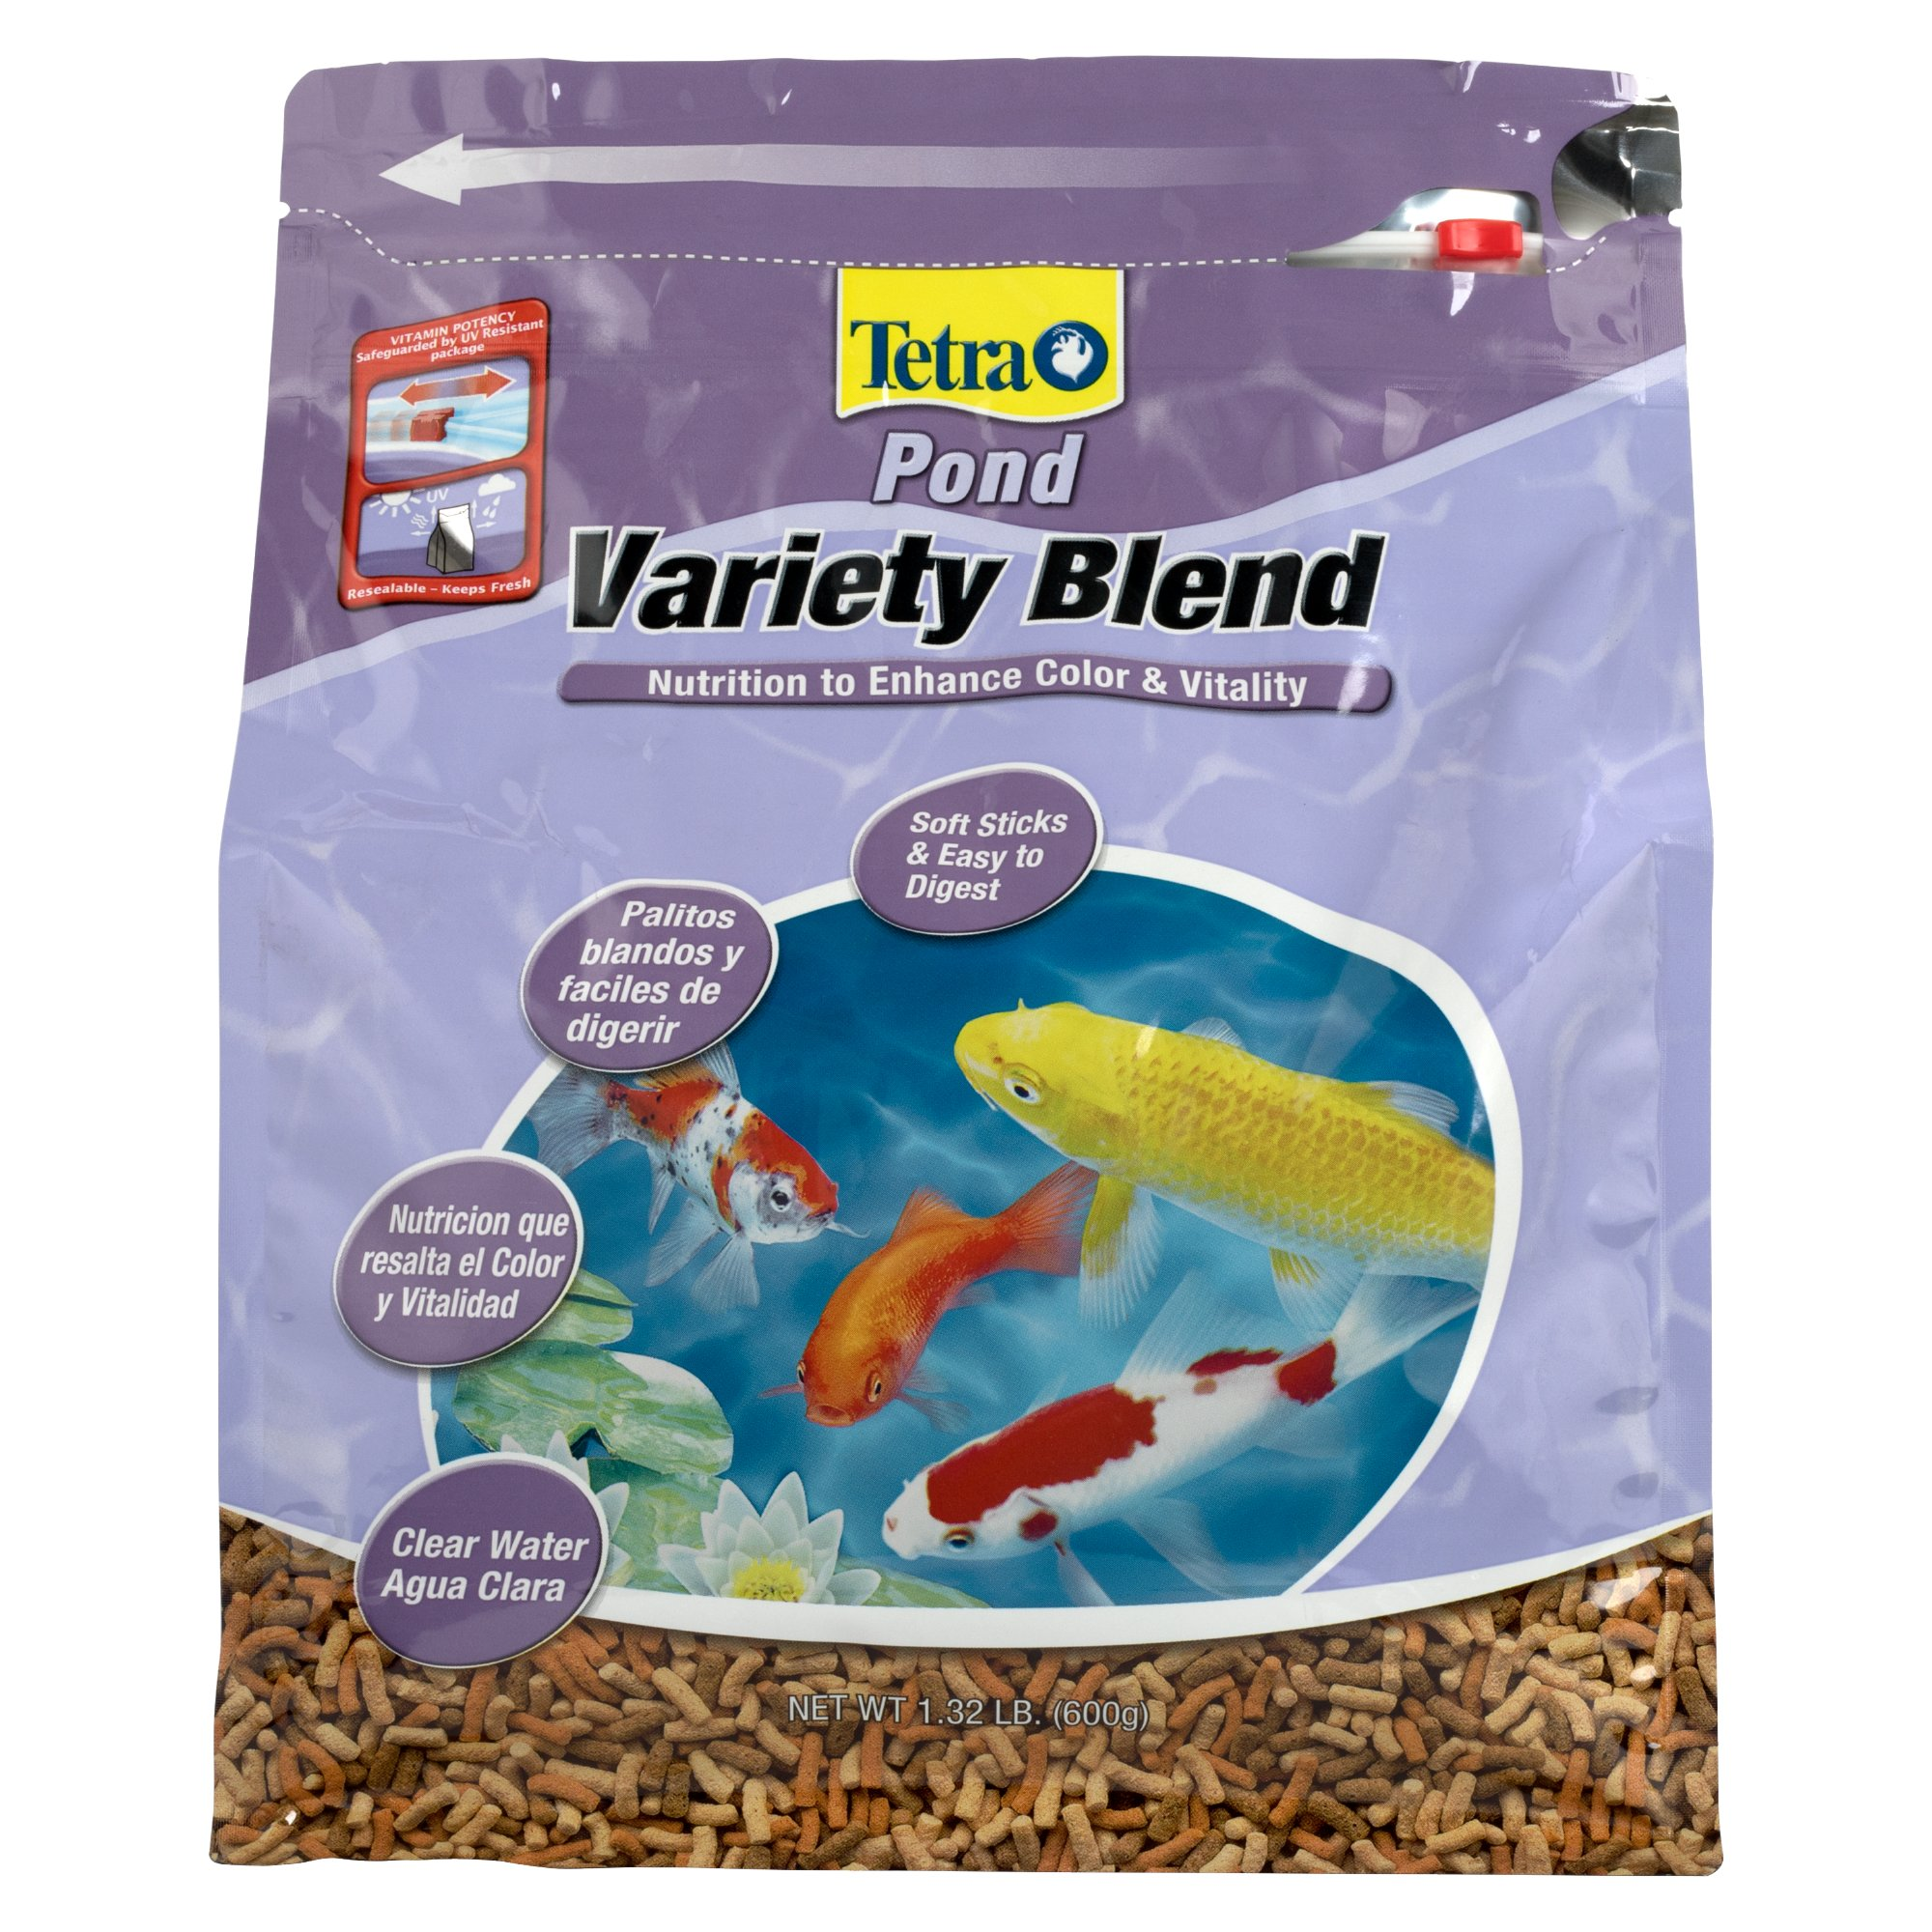 Tetrapond variety blend pond fish food petco for Pond fish food